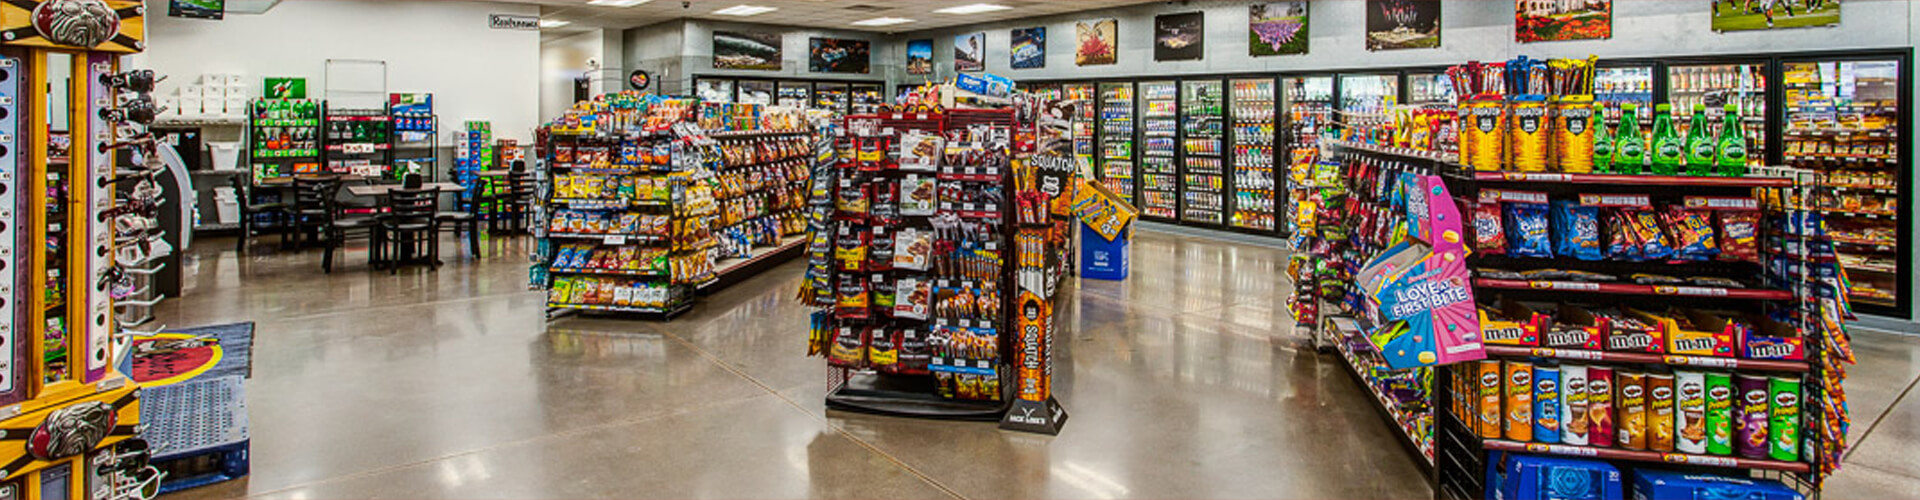 inside the convenience store with fully stocked shelves of food and drinks